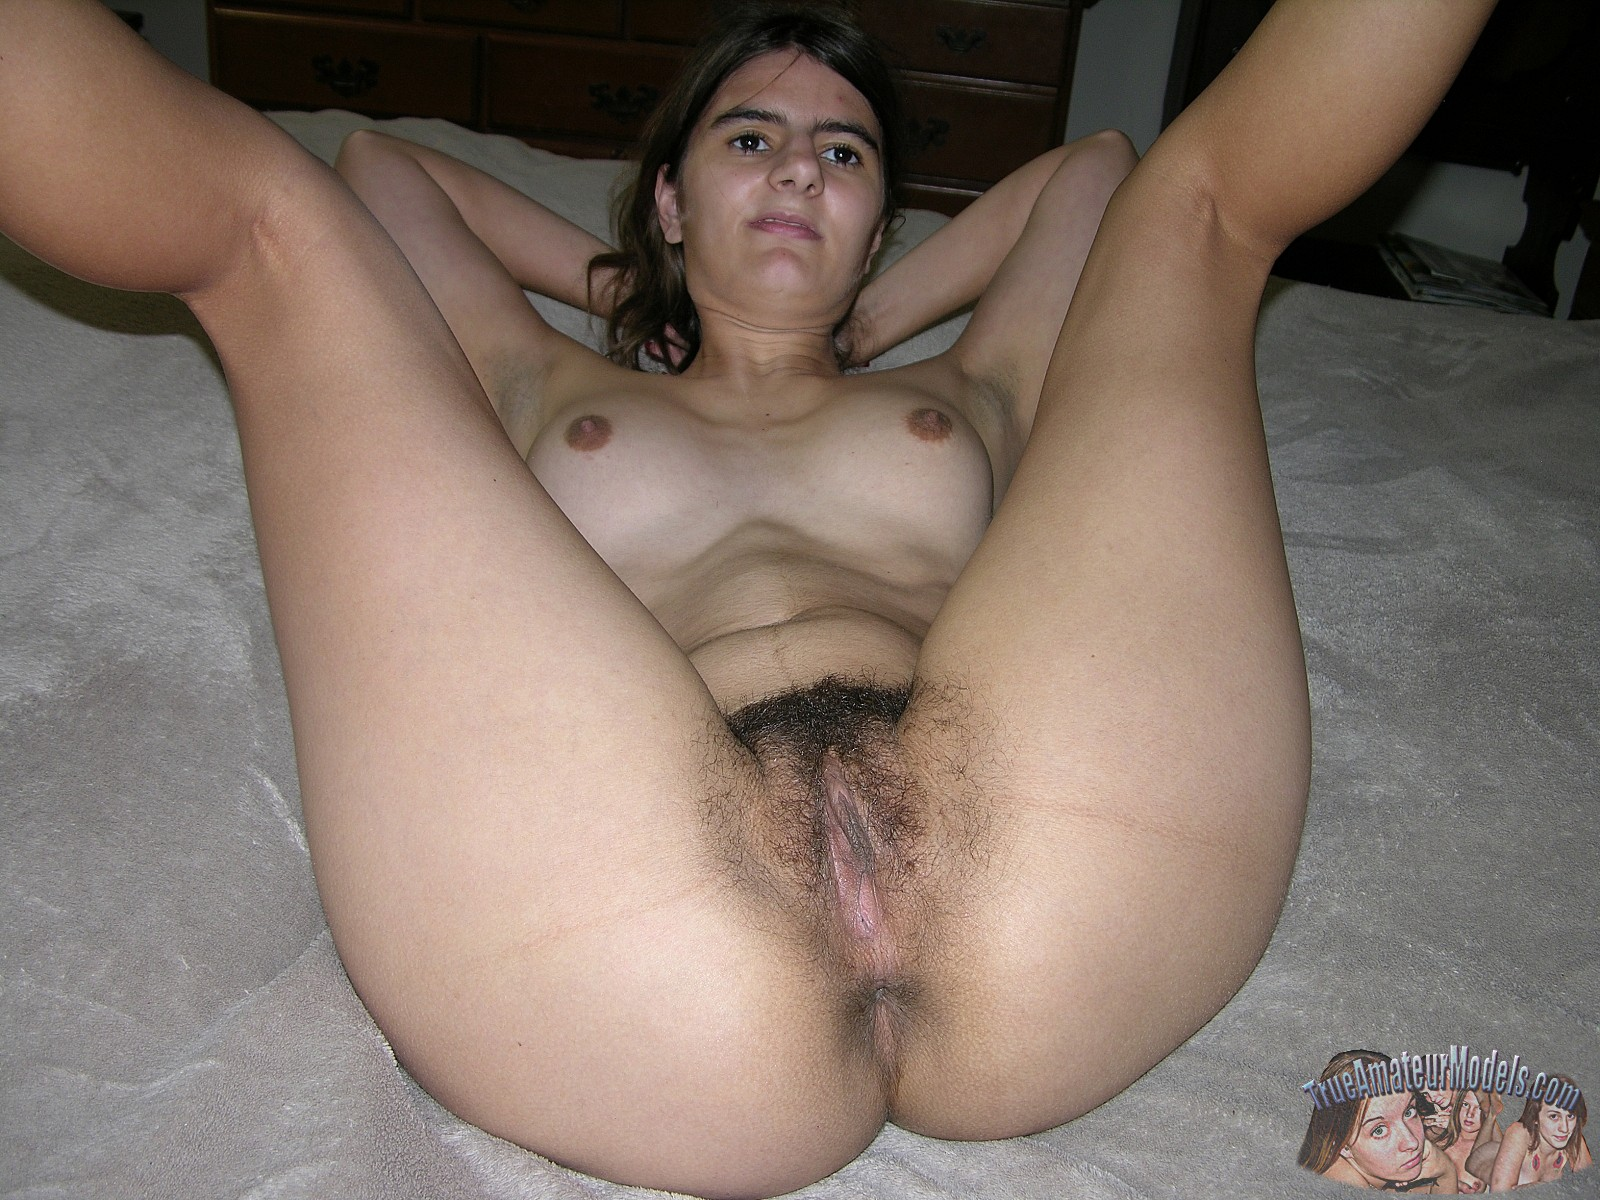 Sexy amateur indian women